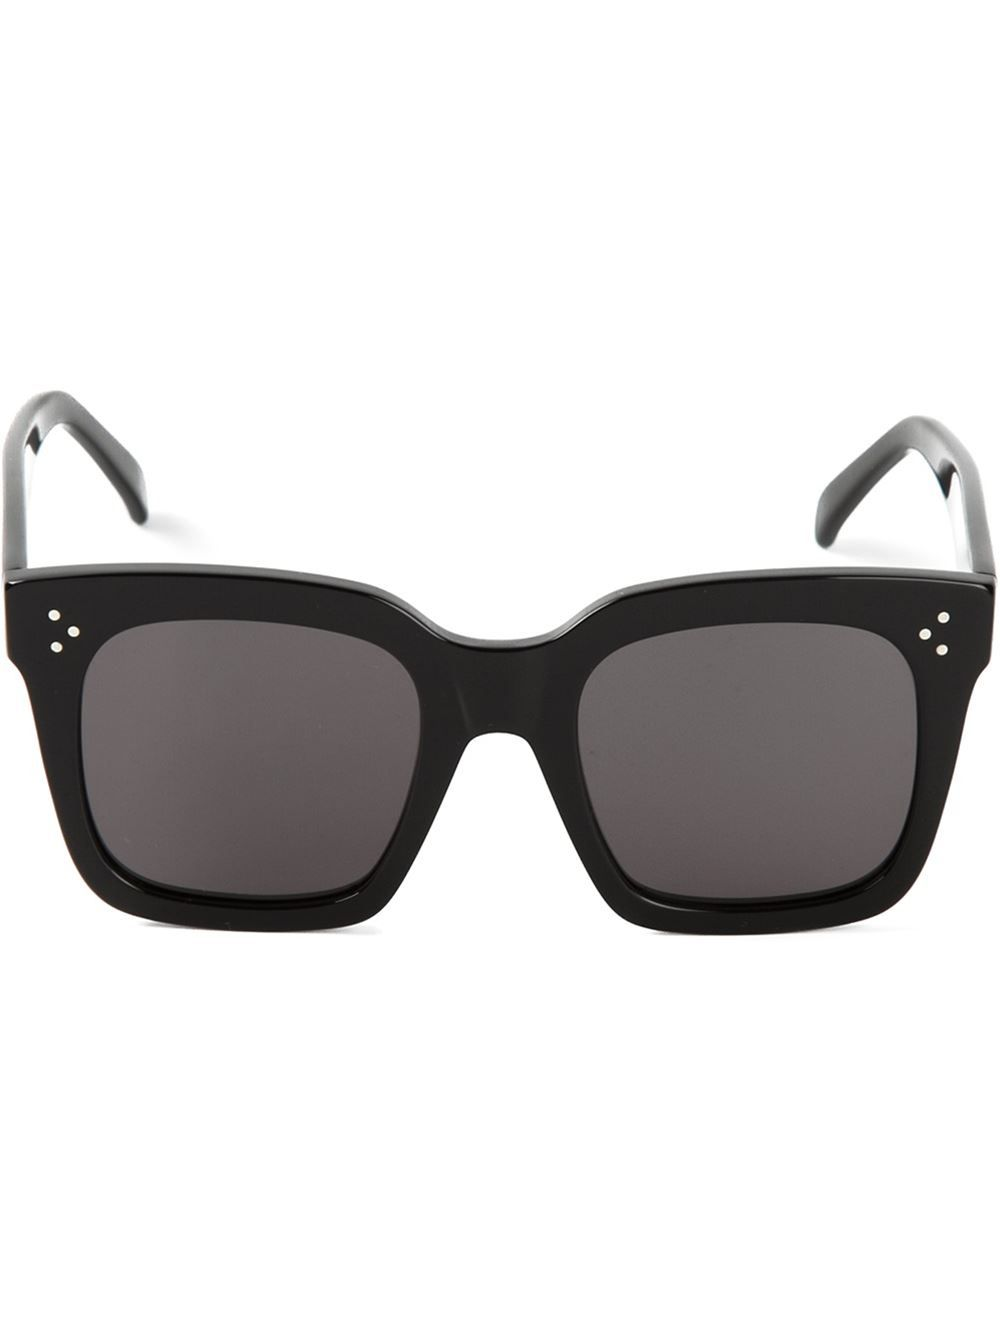 1f142e107fa5 Celine  Tilda  Sunglasses in Black